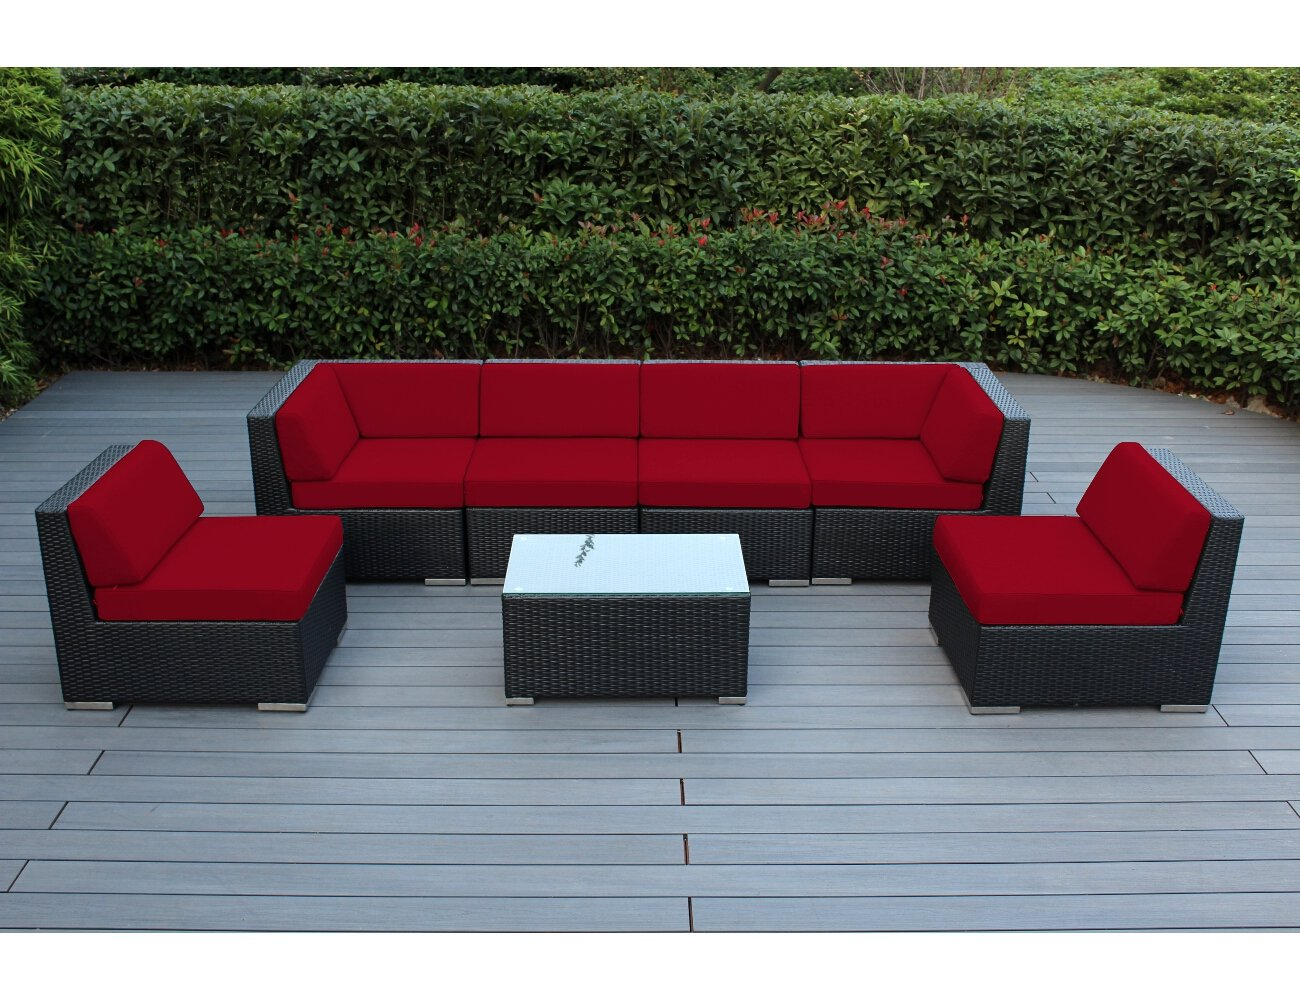 Ohana Collection 7 Piece Ohana Outdoor Patio Wicker Sectional Sofa Set - Red